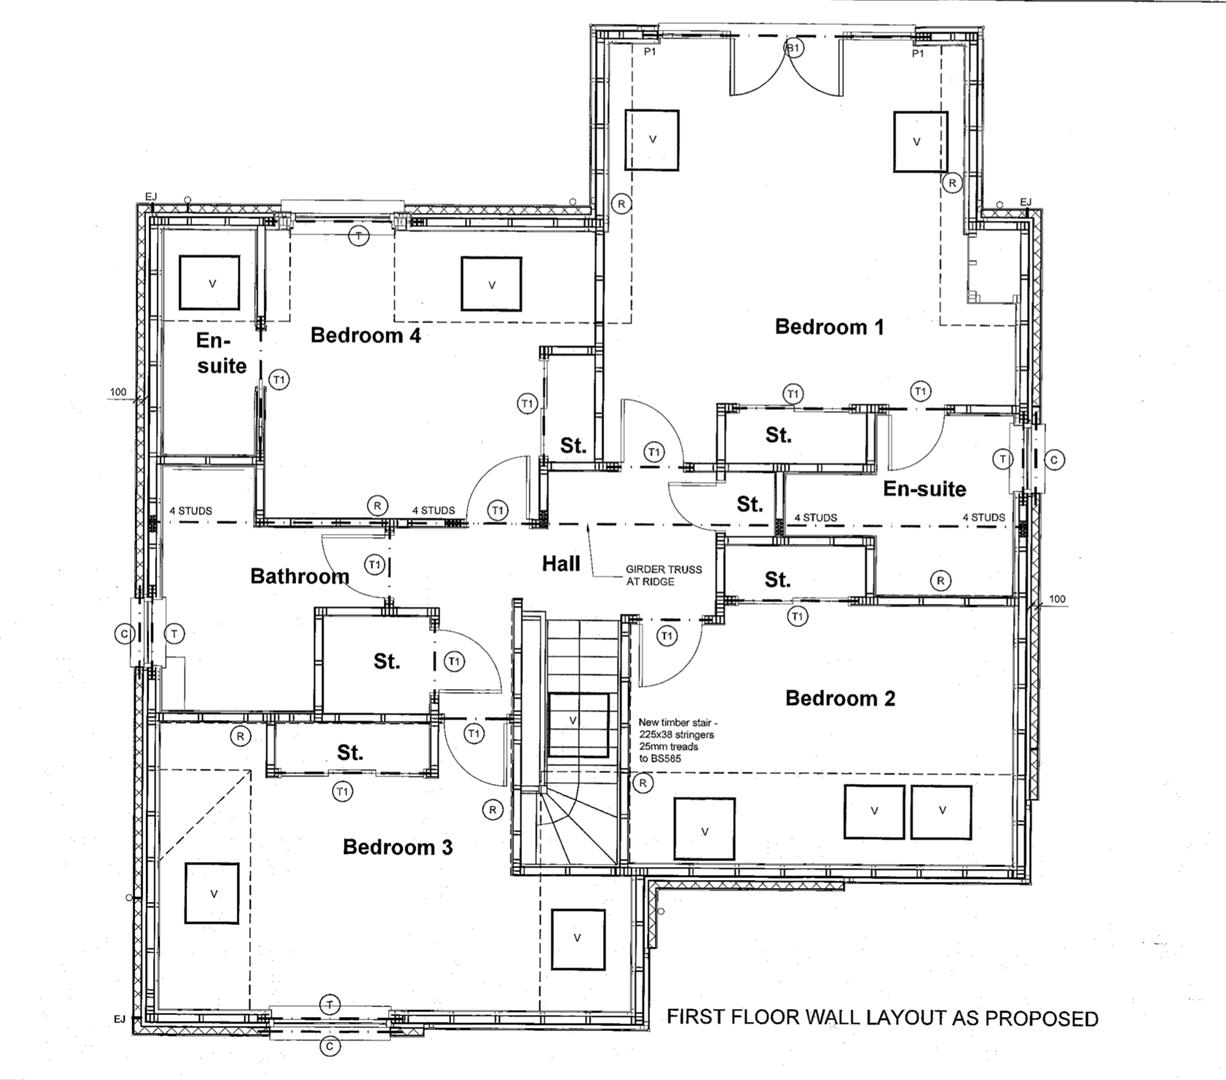 First Floor Wall Layout